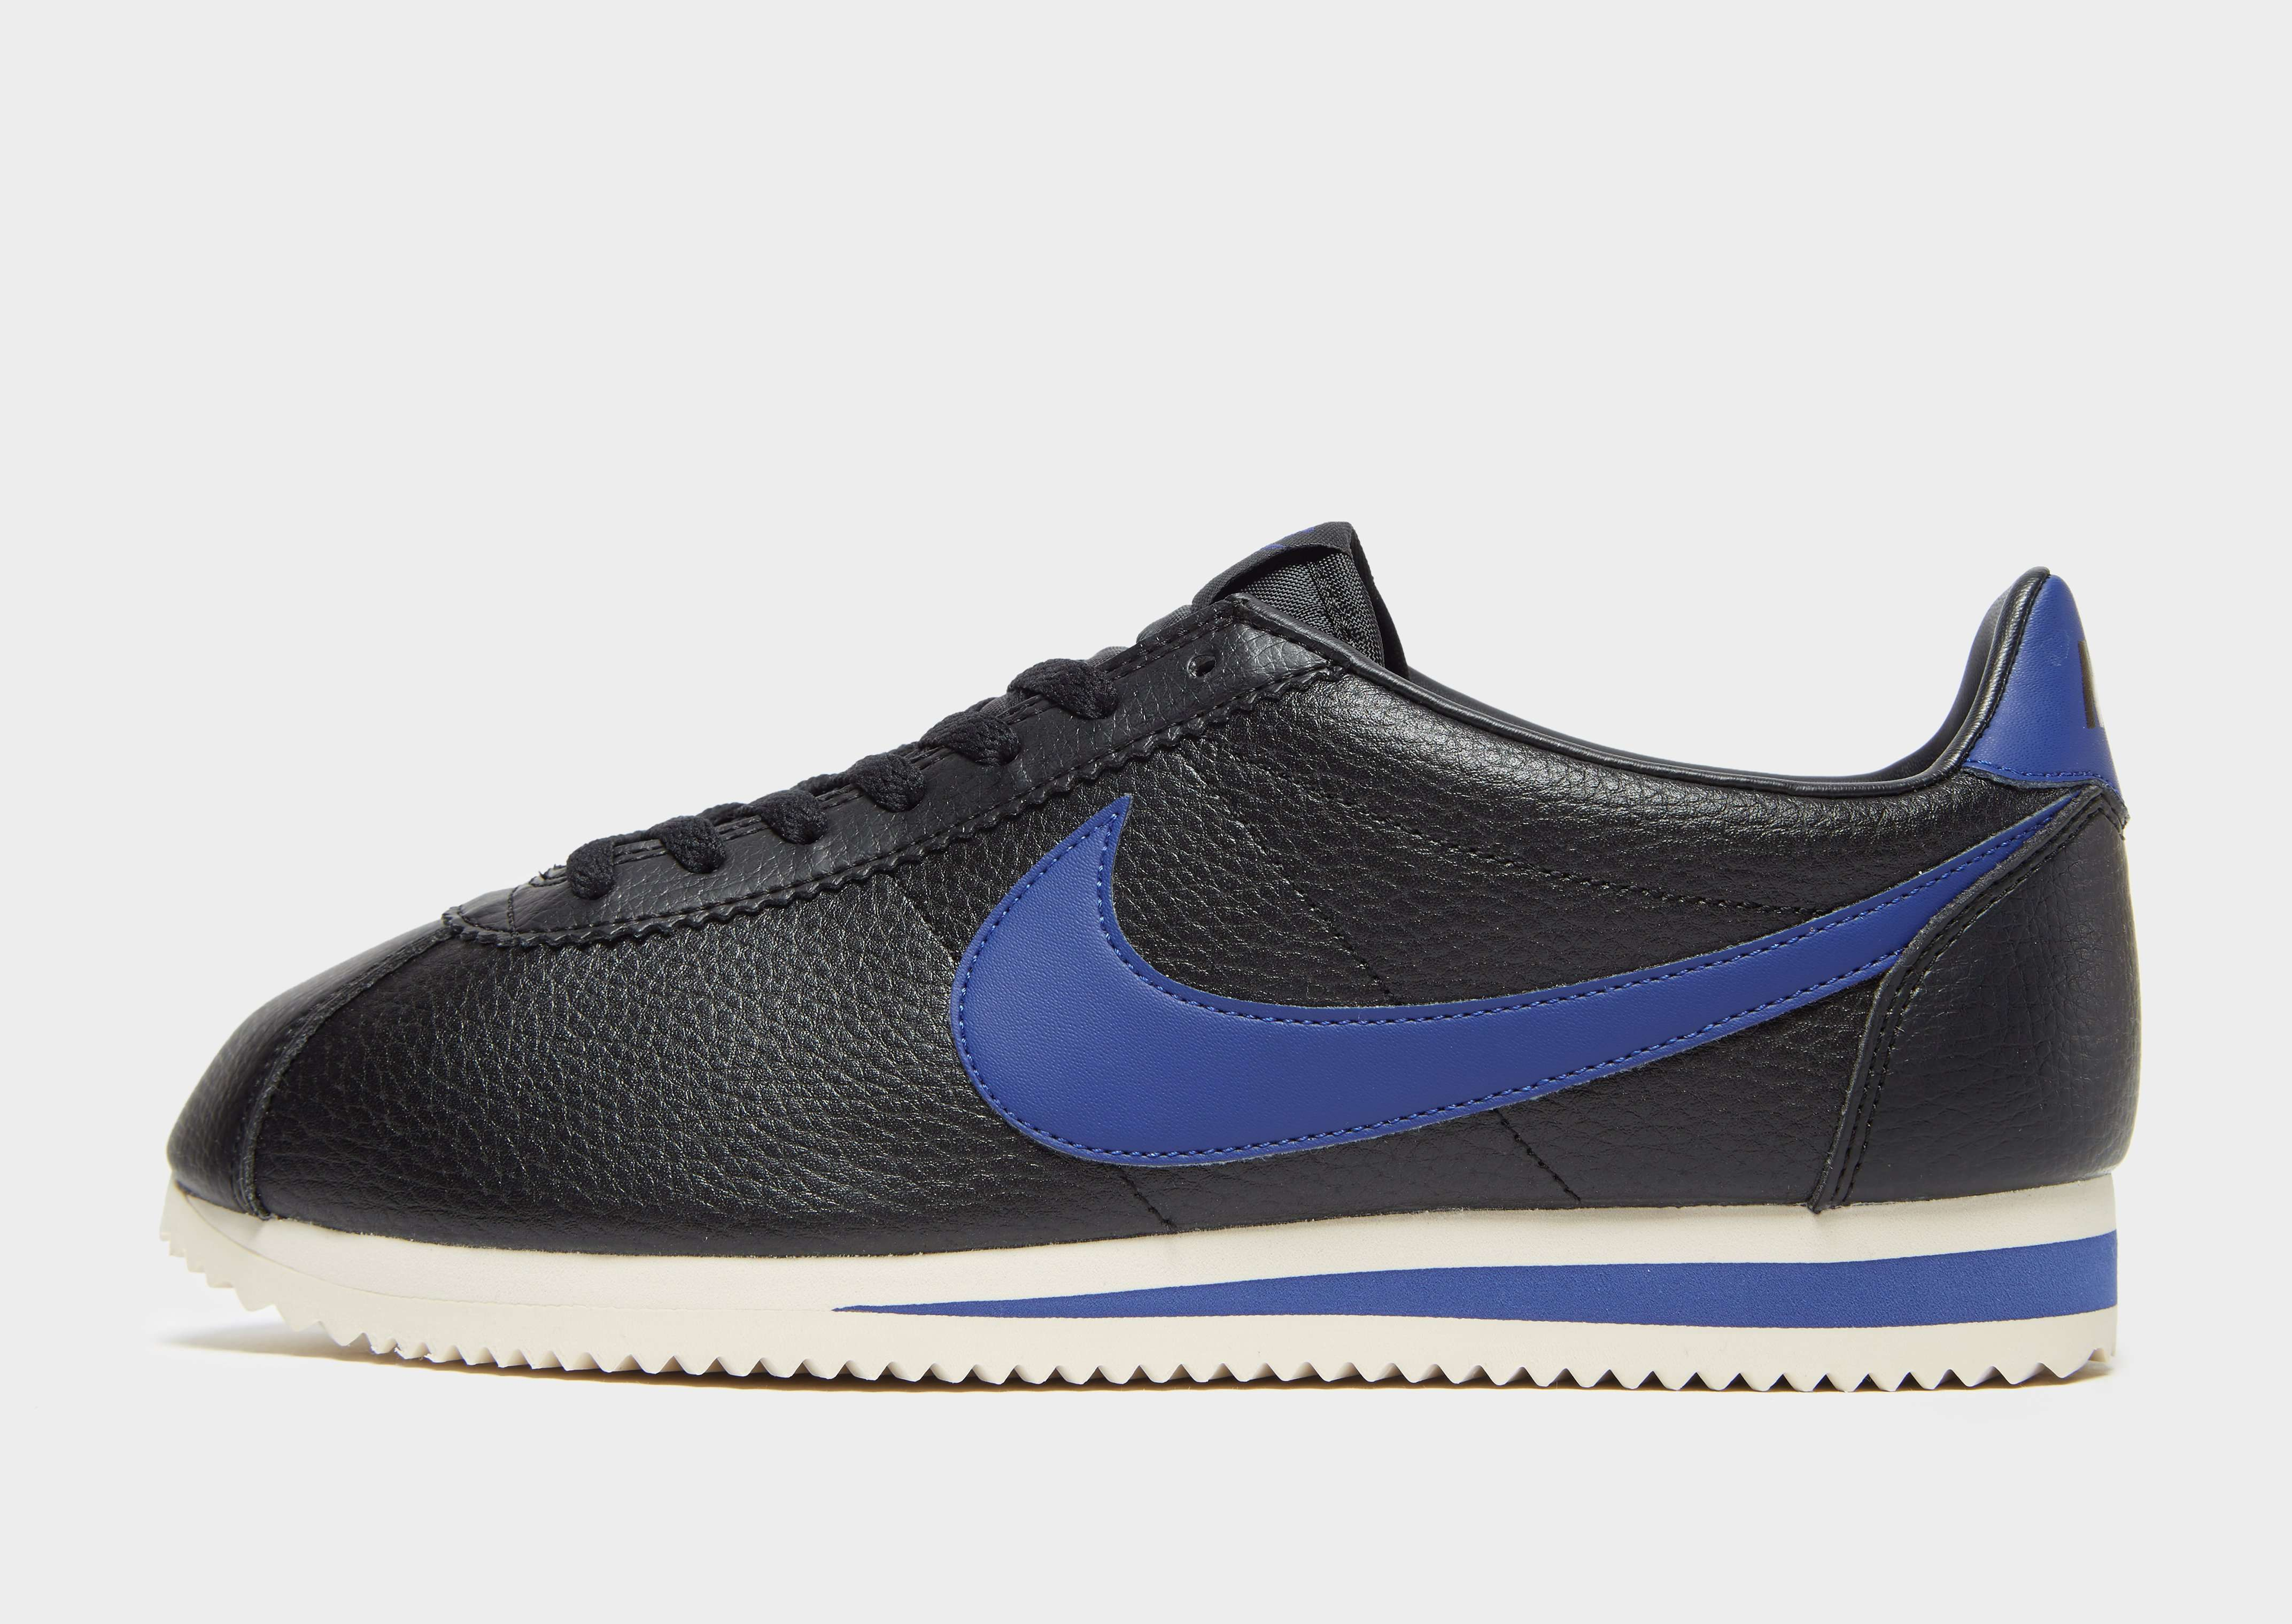 e61317b3ae43d denmark affordable reebok classic leather r12 lux graphite trainers men  outlet uk 171313 cd4c5 247e8  promo code for nike cortez se leather jd  sports 7bfa4 ...